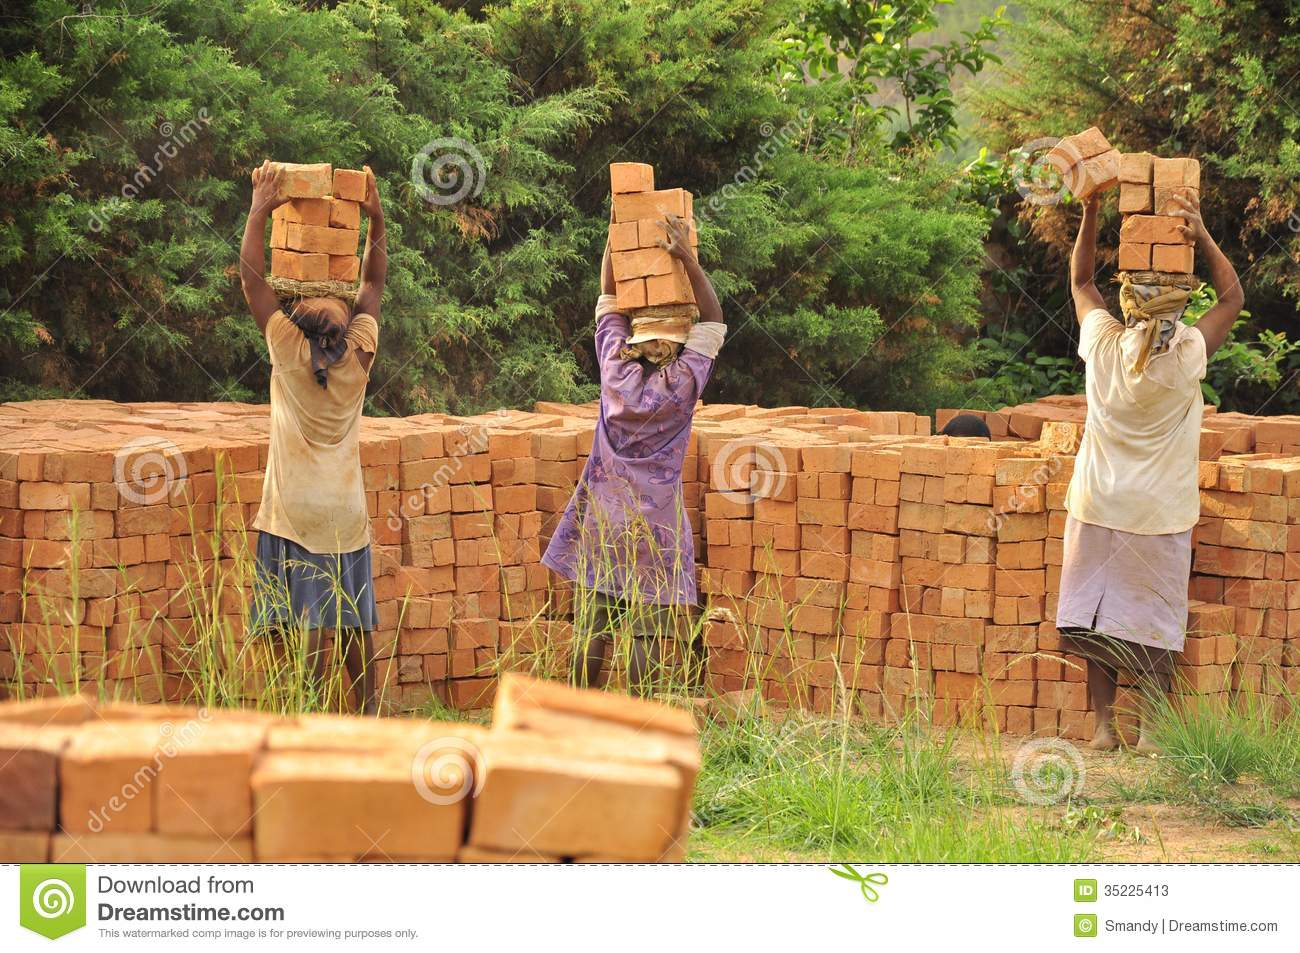 African women at work carrying bricks